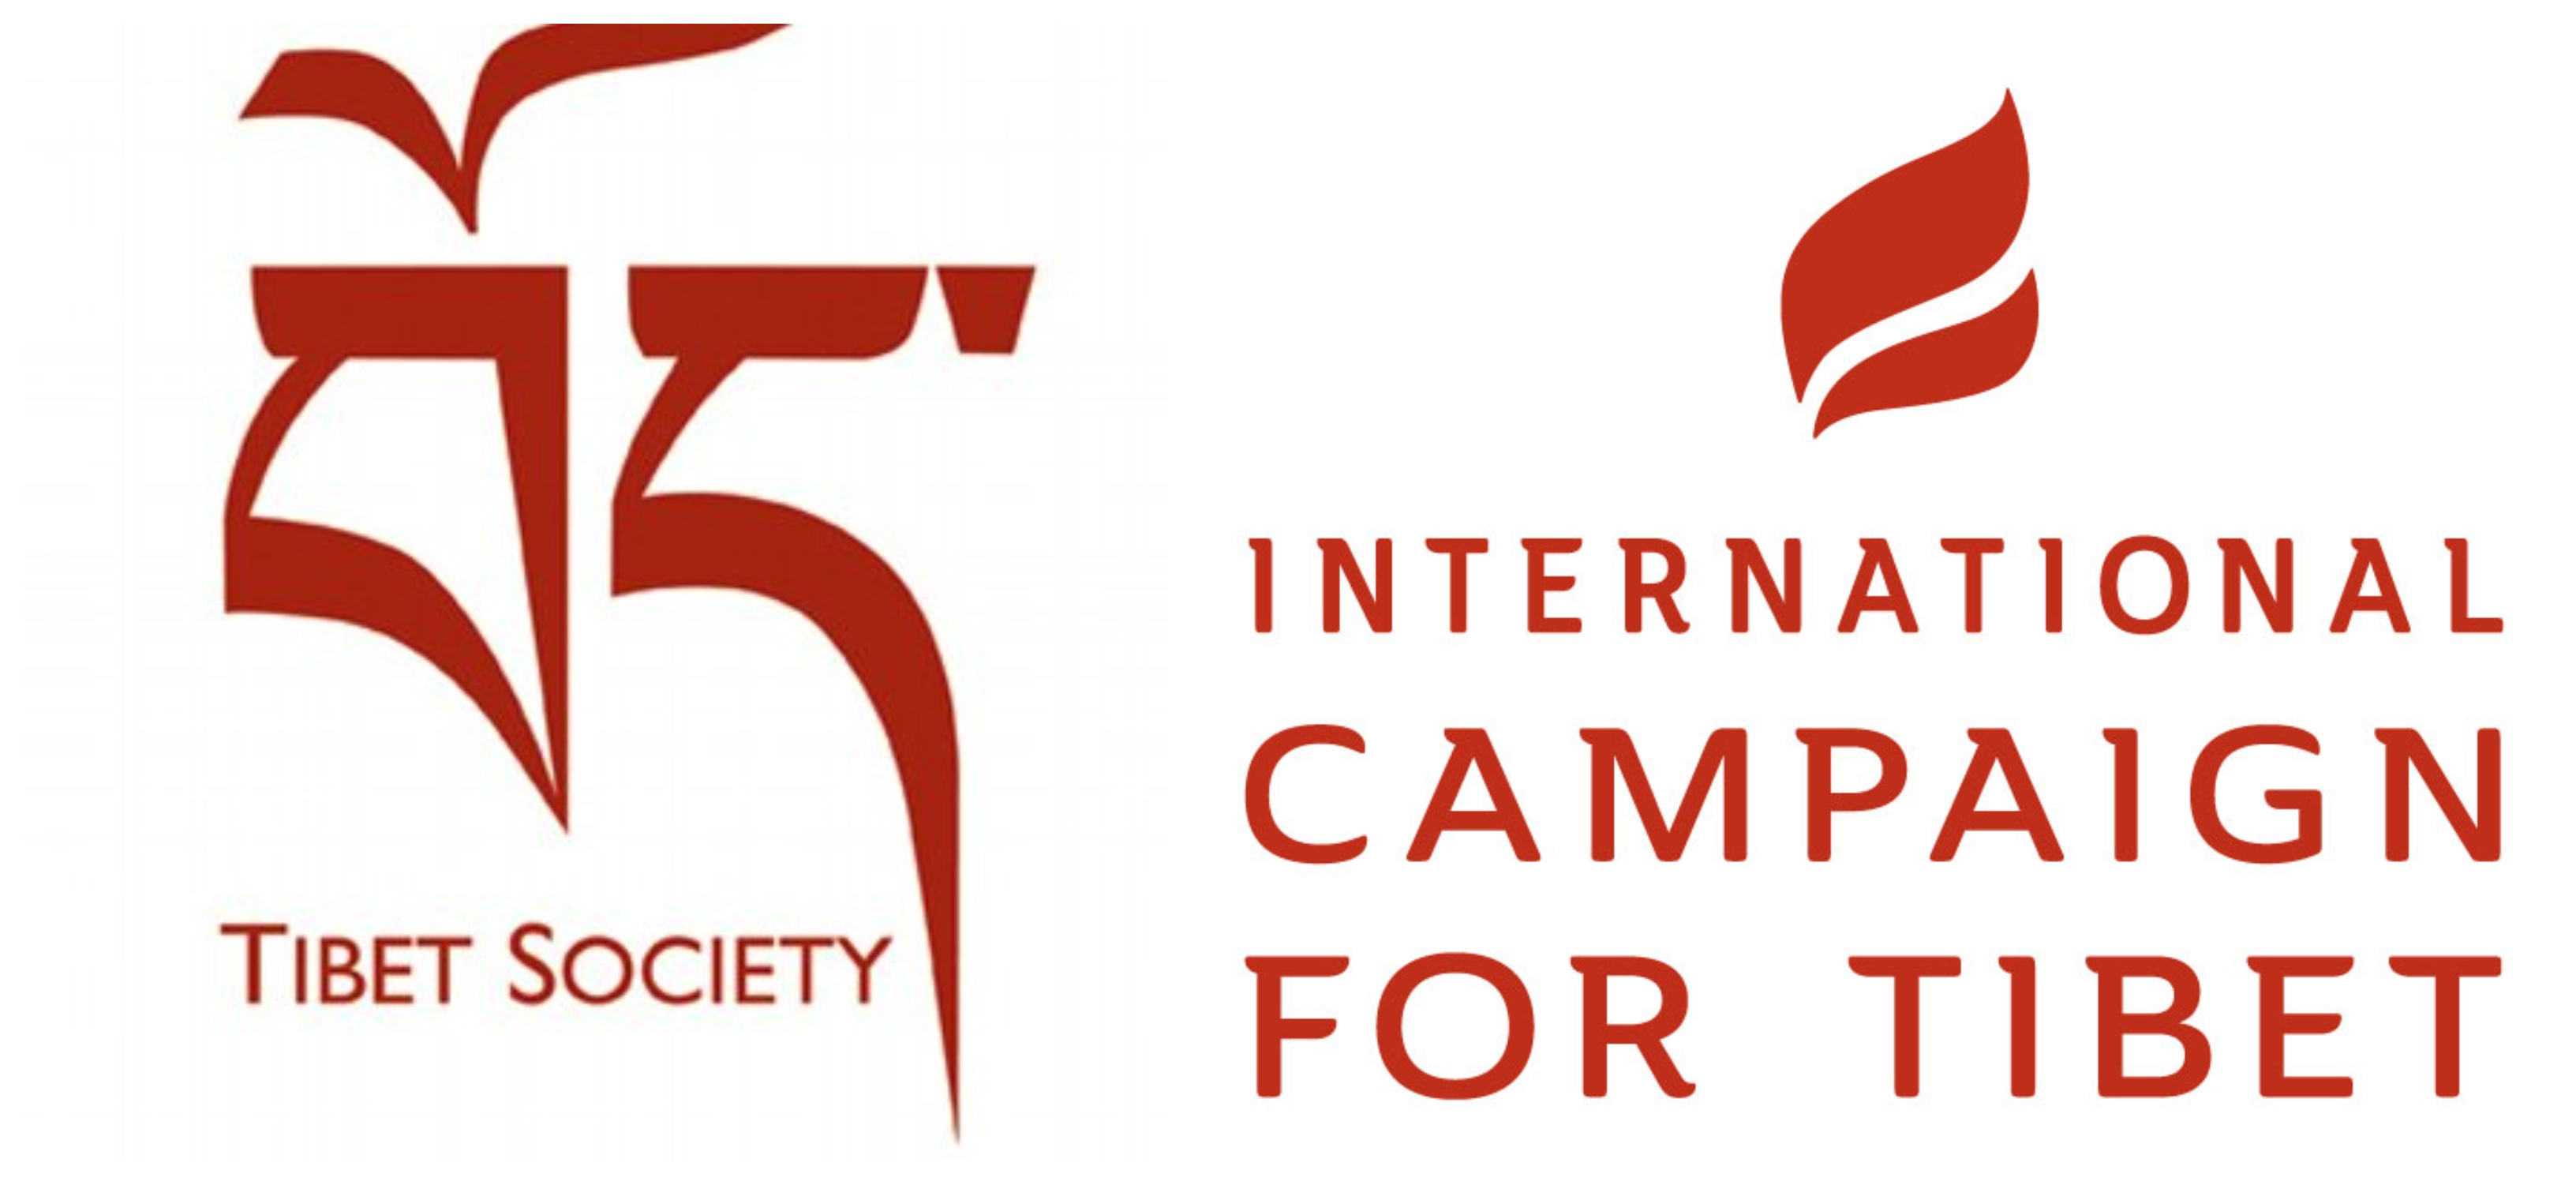 Tibet Society and the International Campaign for Tibet Issue a Joint Submission to the UK Foreign Affairs Committee